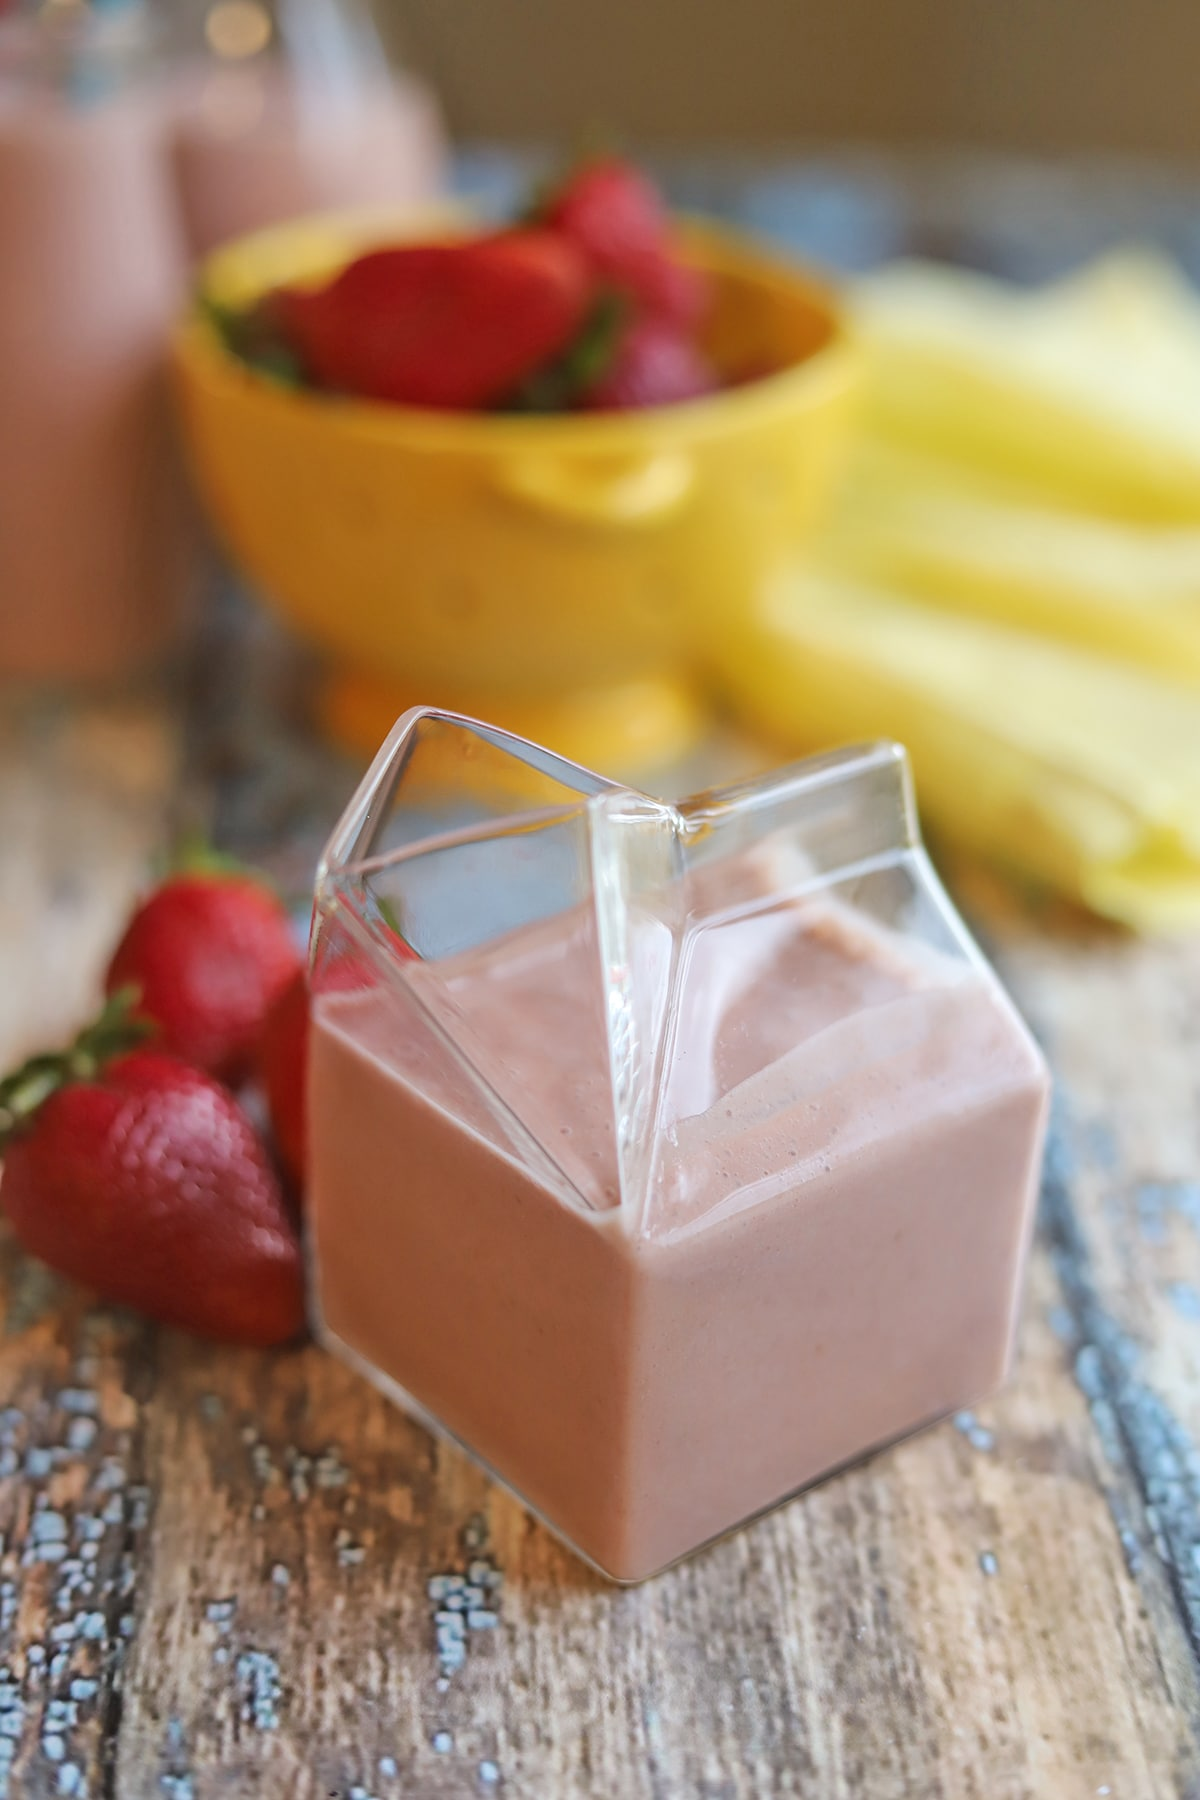 Old school style glass milk container filled with strawberry milk.